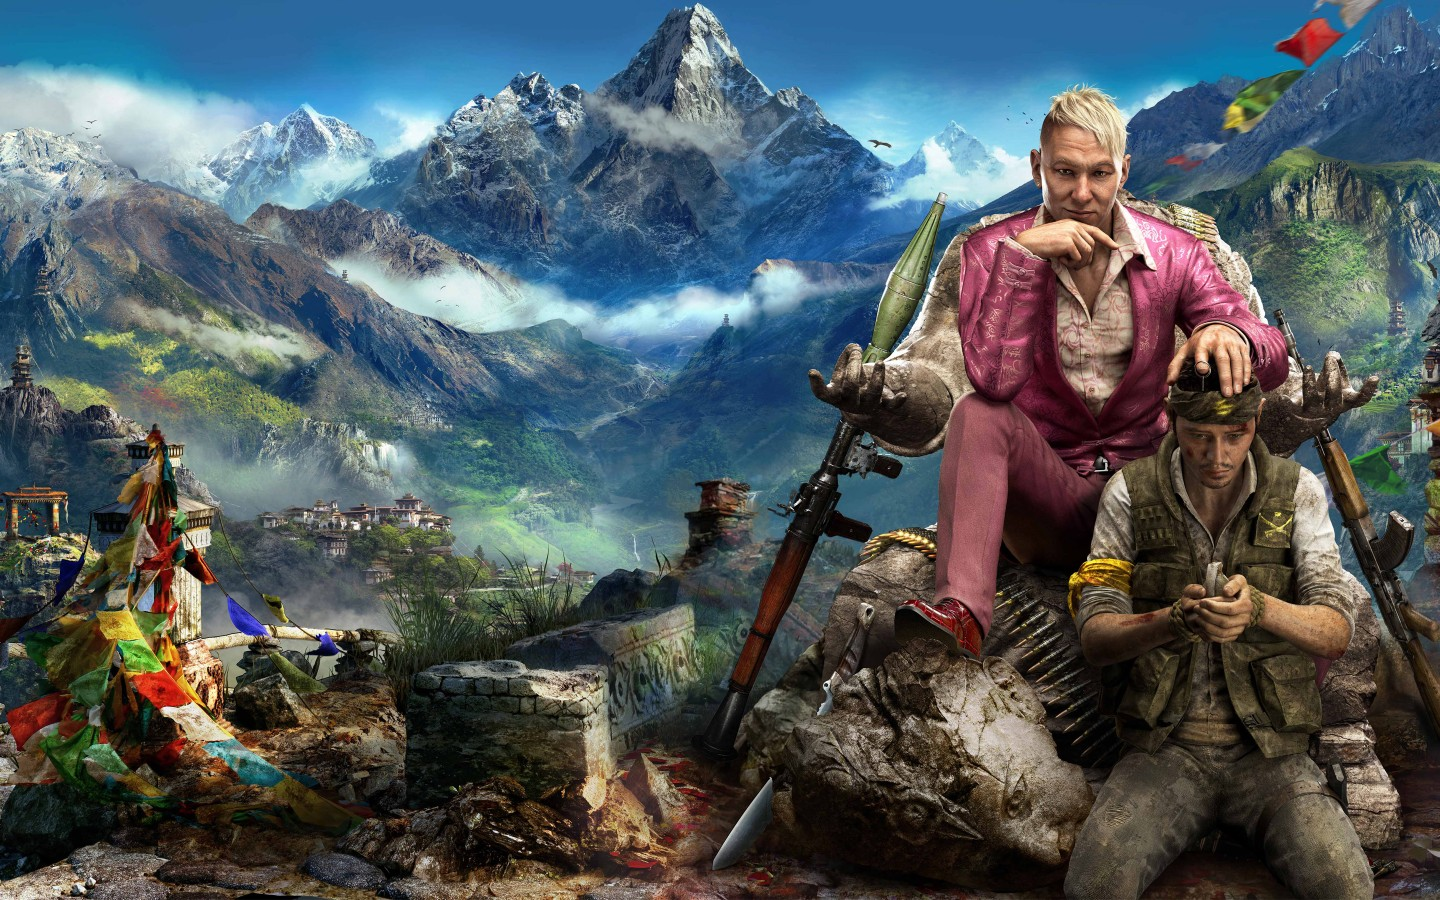 Pc Wallpaper 3d Love Far Cry 4 New Game Wallpapers Hd Wallpapers Id 13589